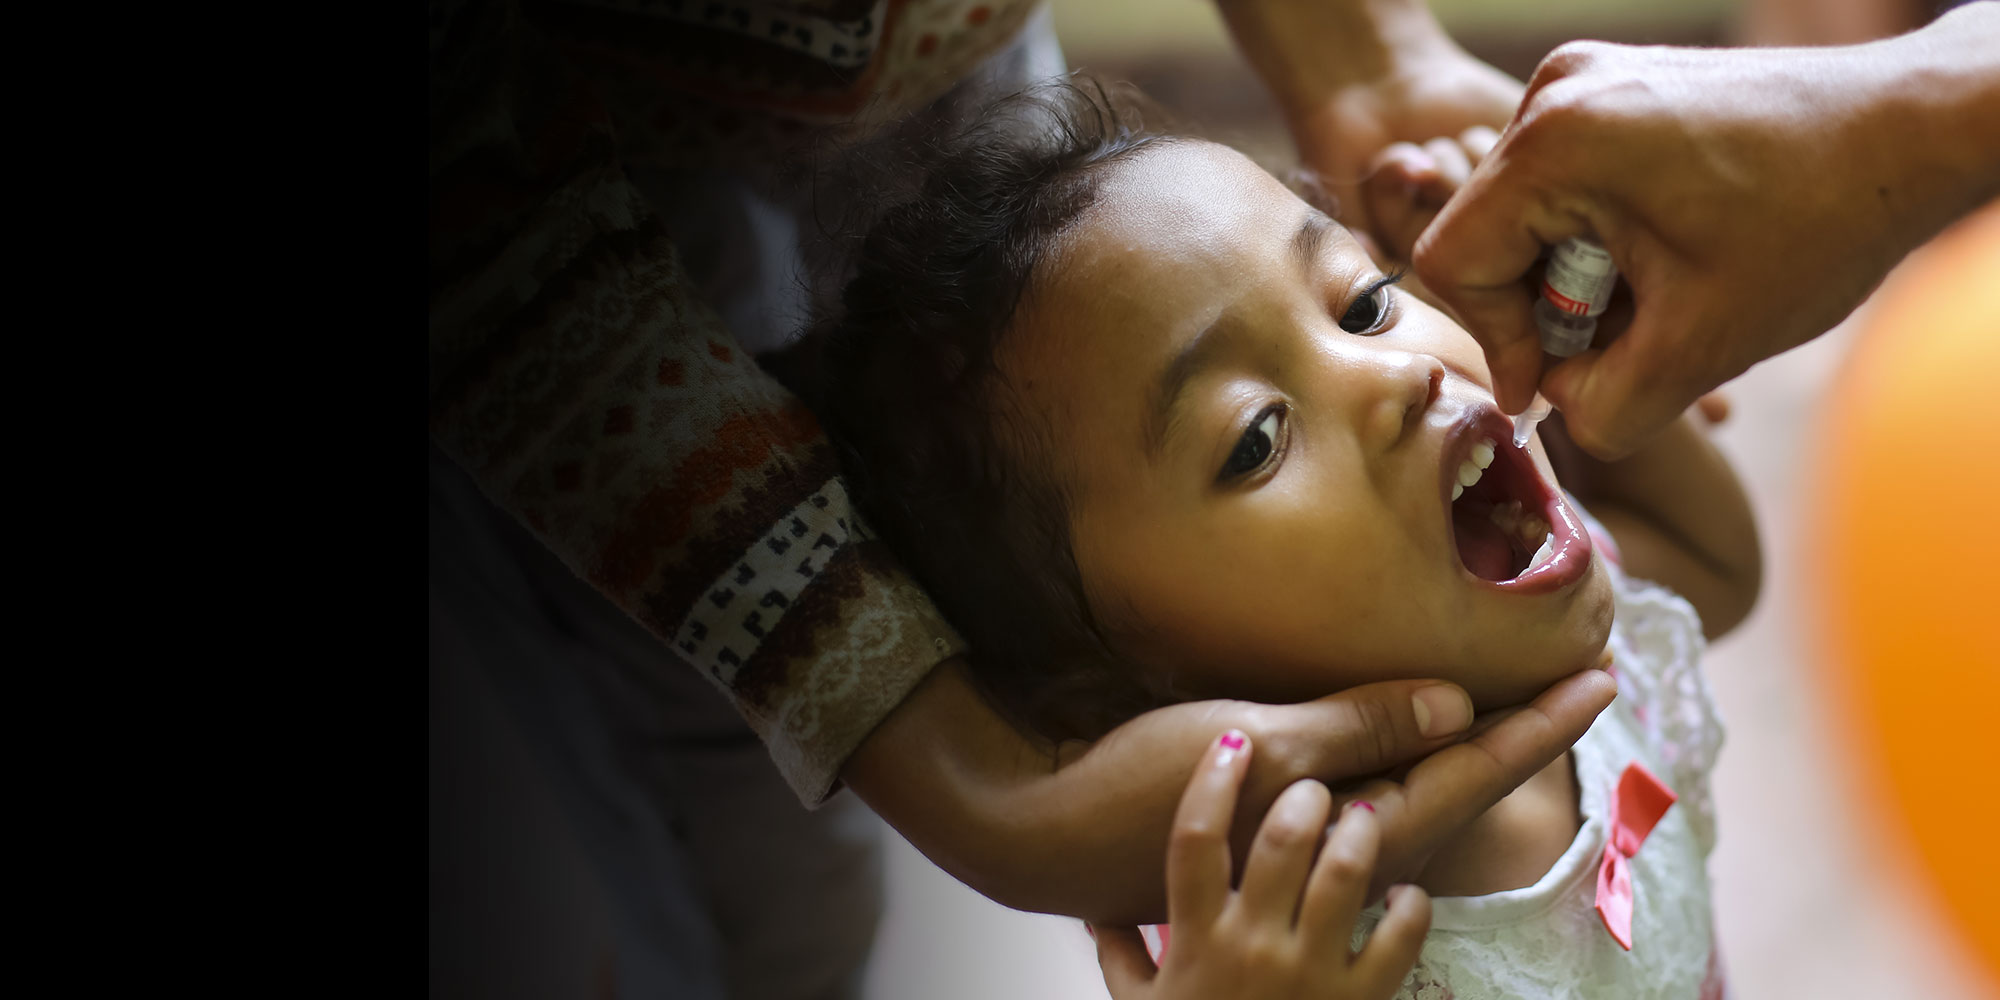 A child receives the polio vaccine in Dili, the capital of Timor-Leste. ©UNICEF Timor-Leste/Soares.